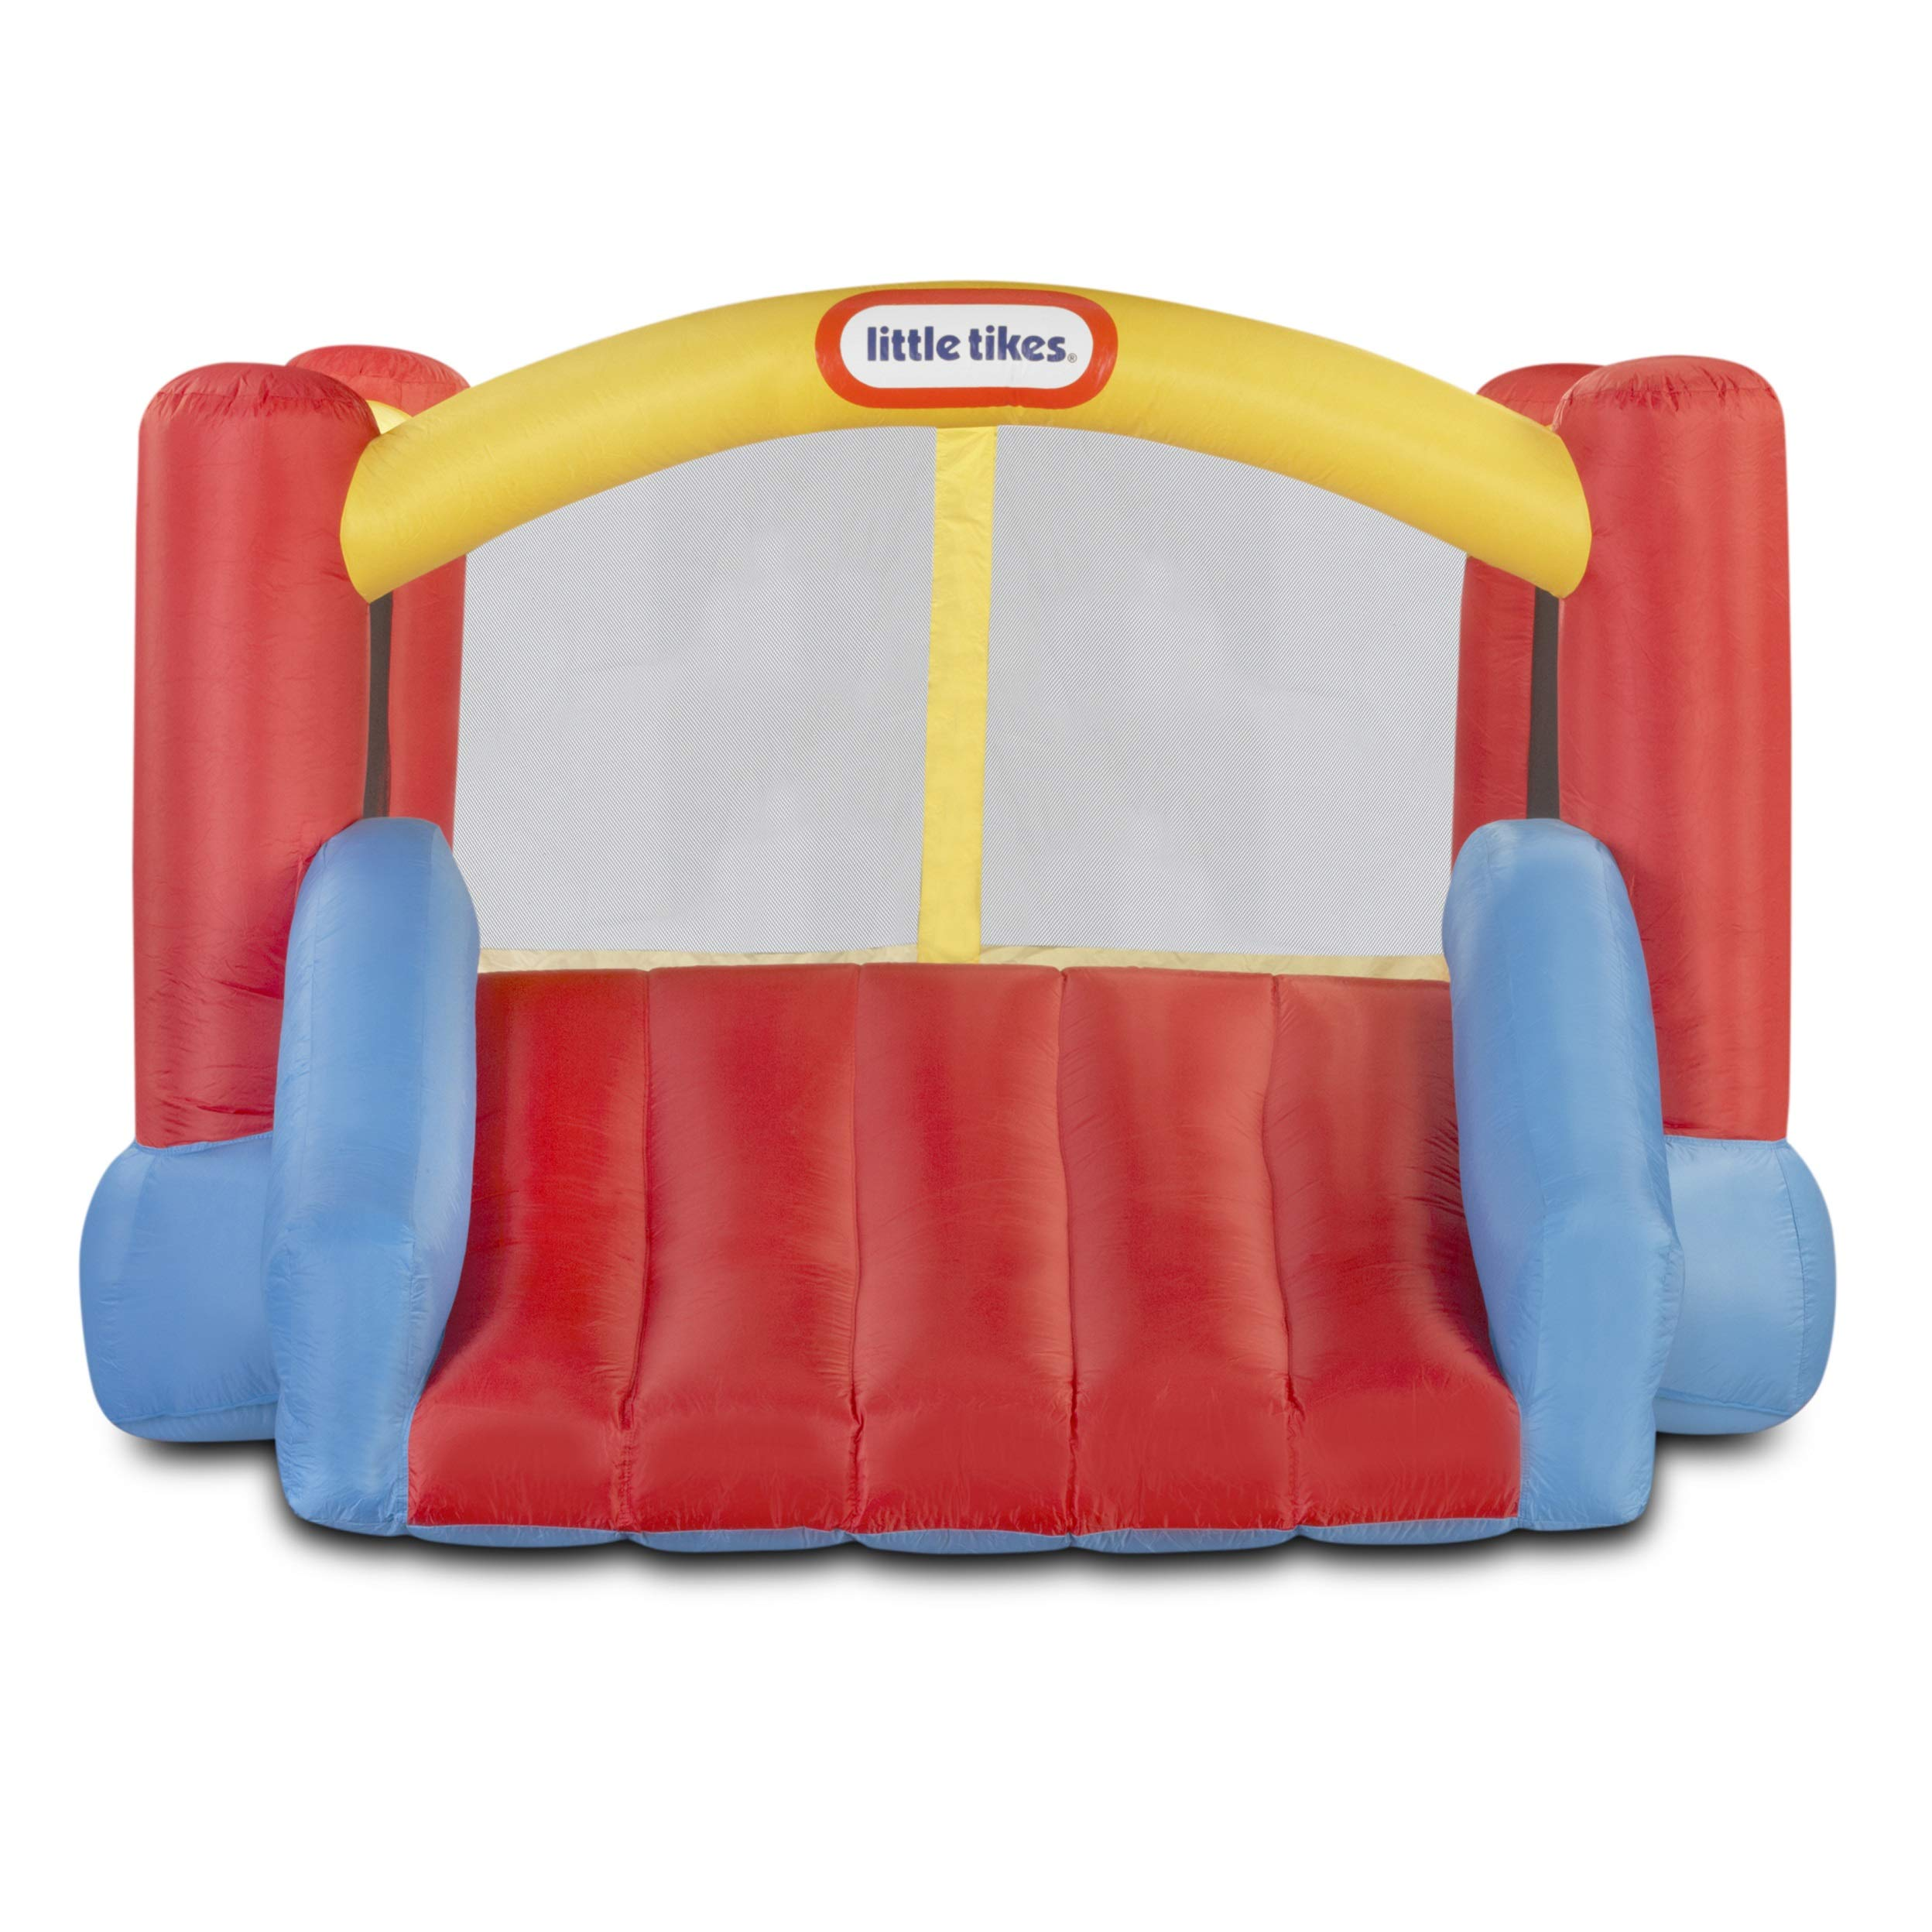 Little Tikes Inflatable Jump 'n Slide Bounce House w/heavy duty blower by Little Tikes (Image #6)